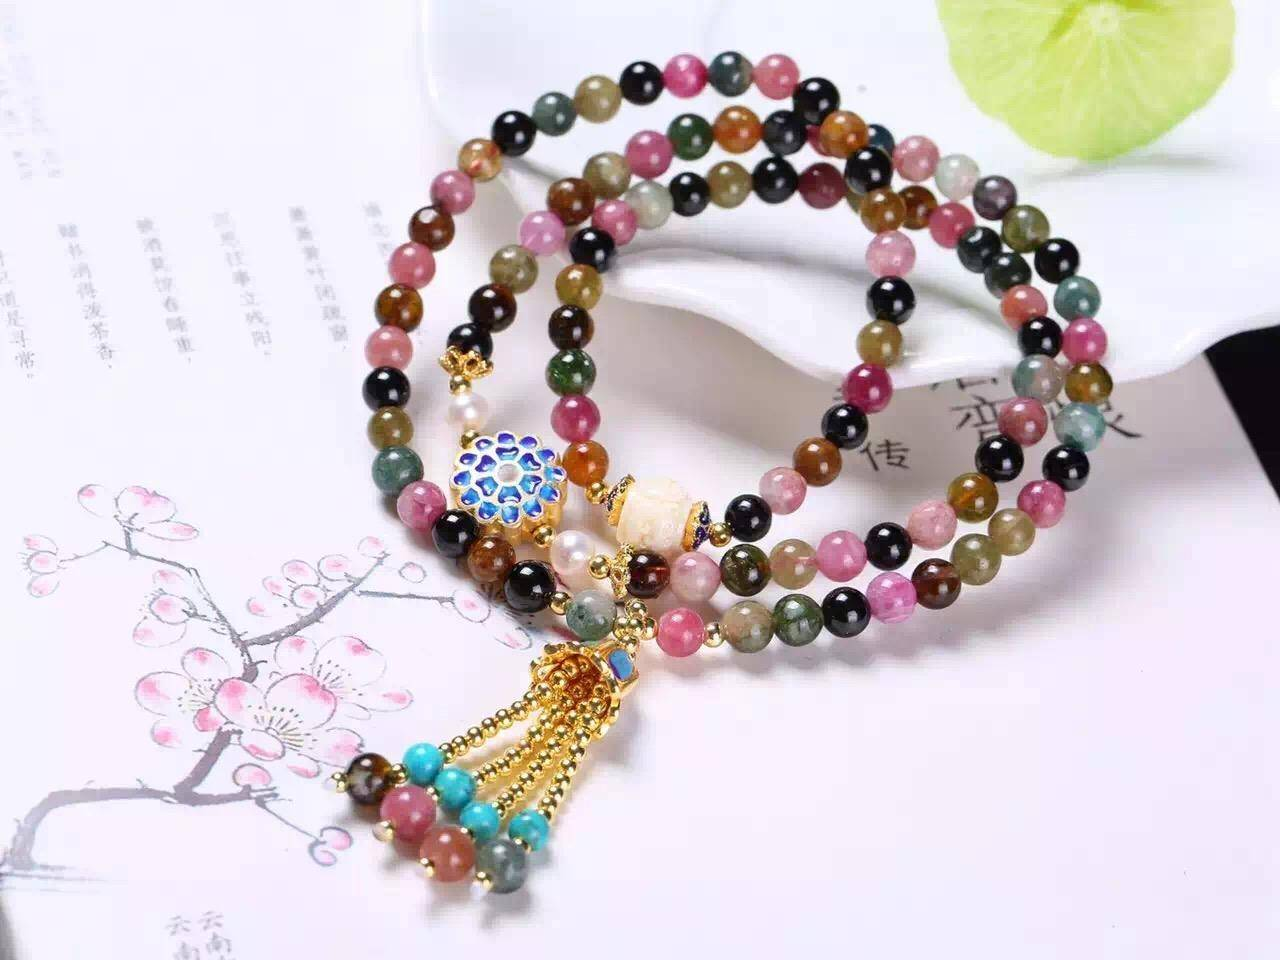 NEFFLY Natural Colorful Tourmaline Folk 925 Sterling Silver 5mm Brazil Style Beaded Strands Bracelet